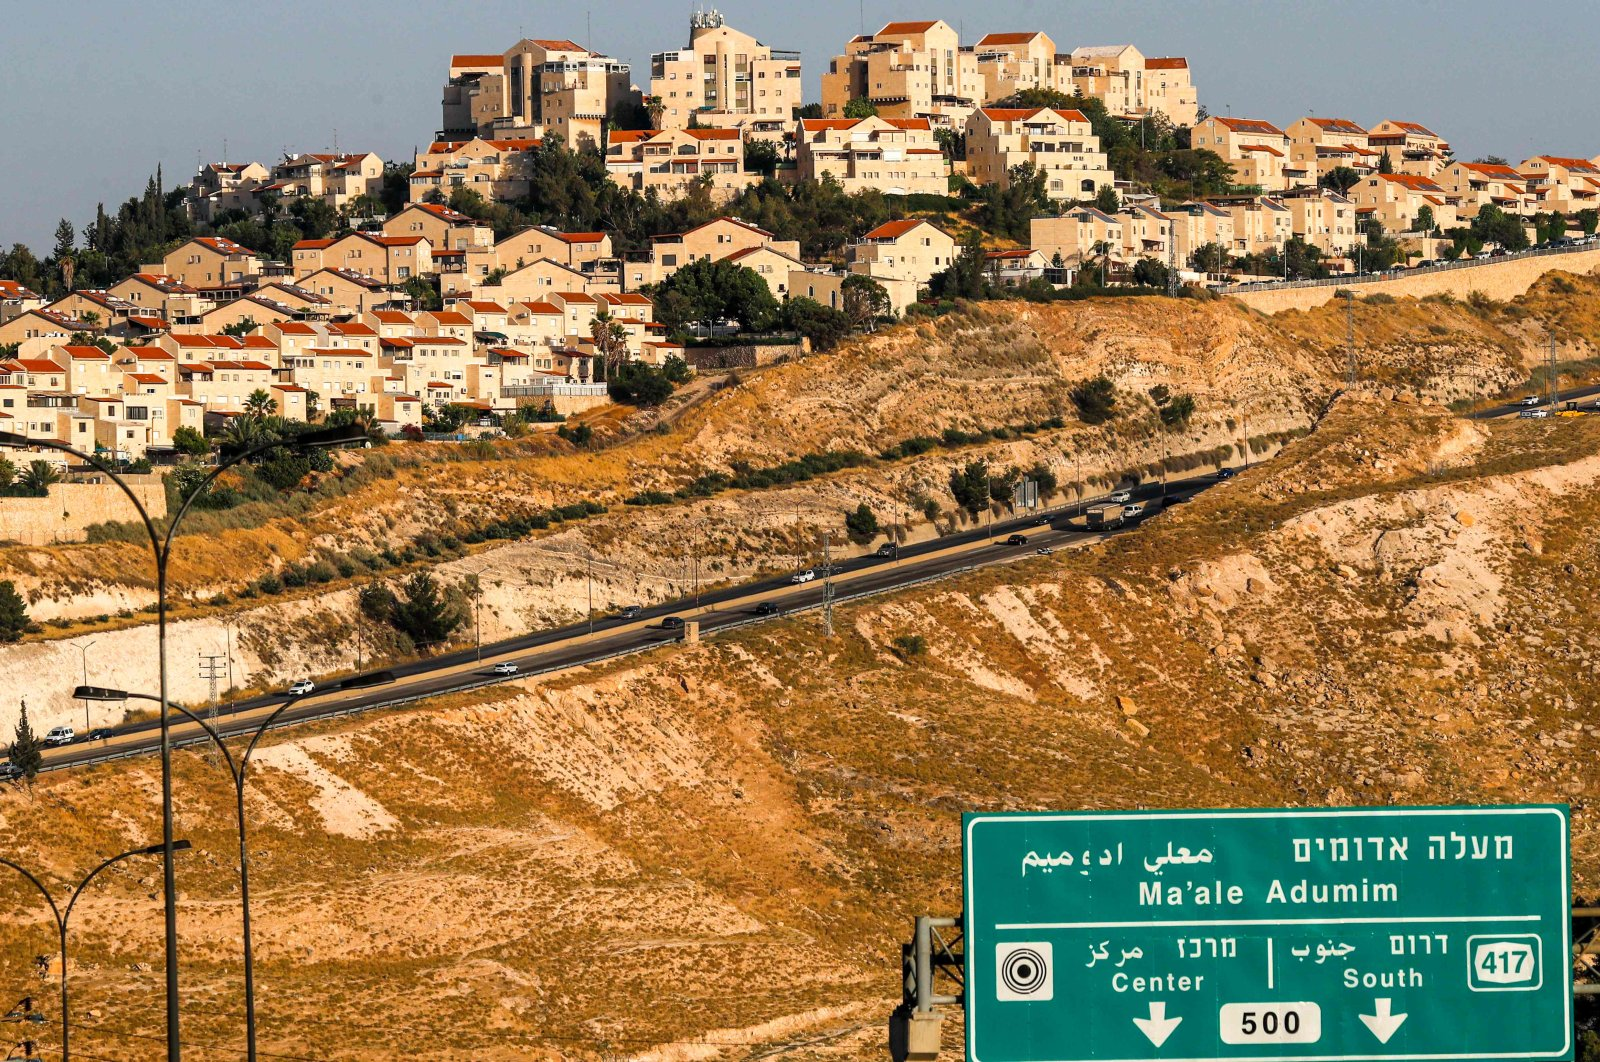 This photo taken from the E1 corridor, a super-sensitive area of the occupied West Bank, shows the Israeli settlement of Maale Adumim, Palestine, June 16, 2020. (AFP Photo)